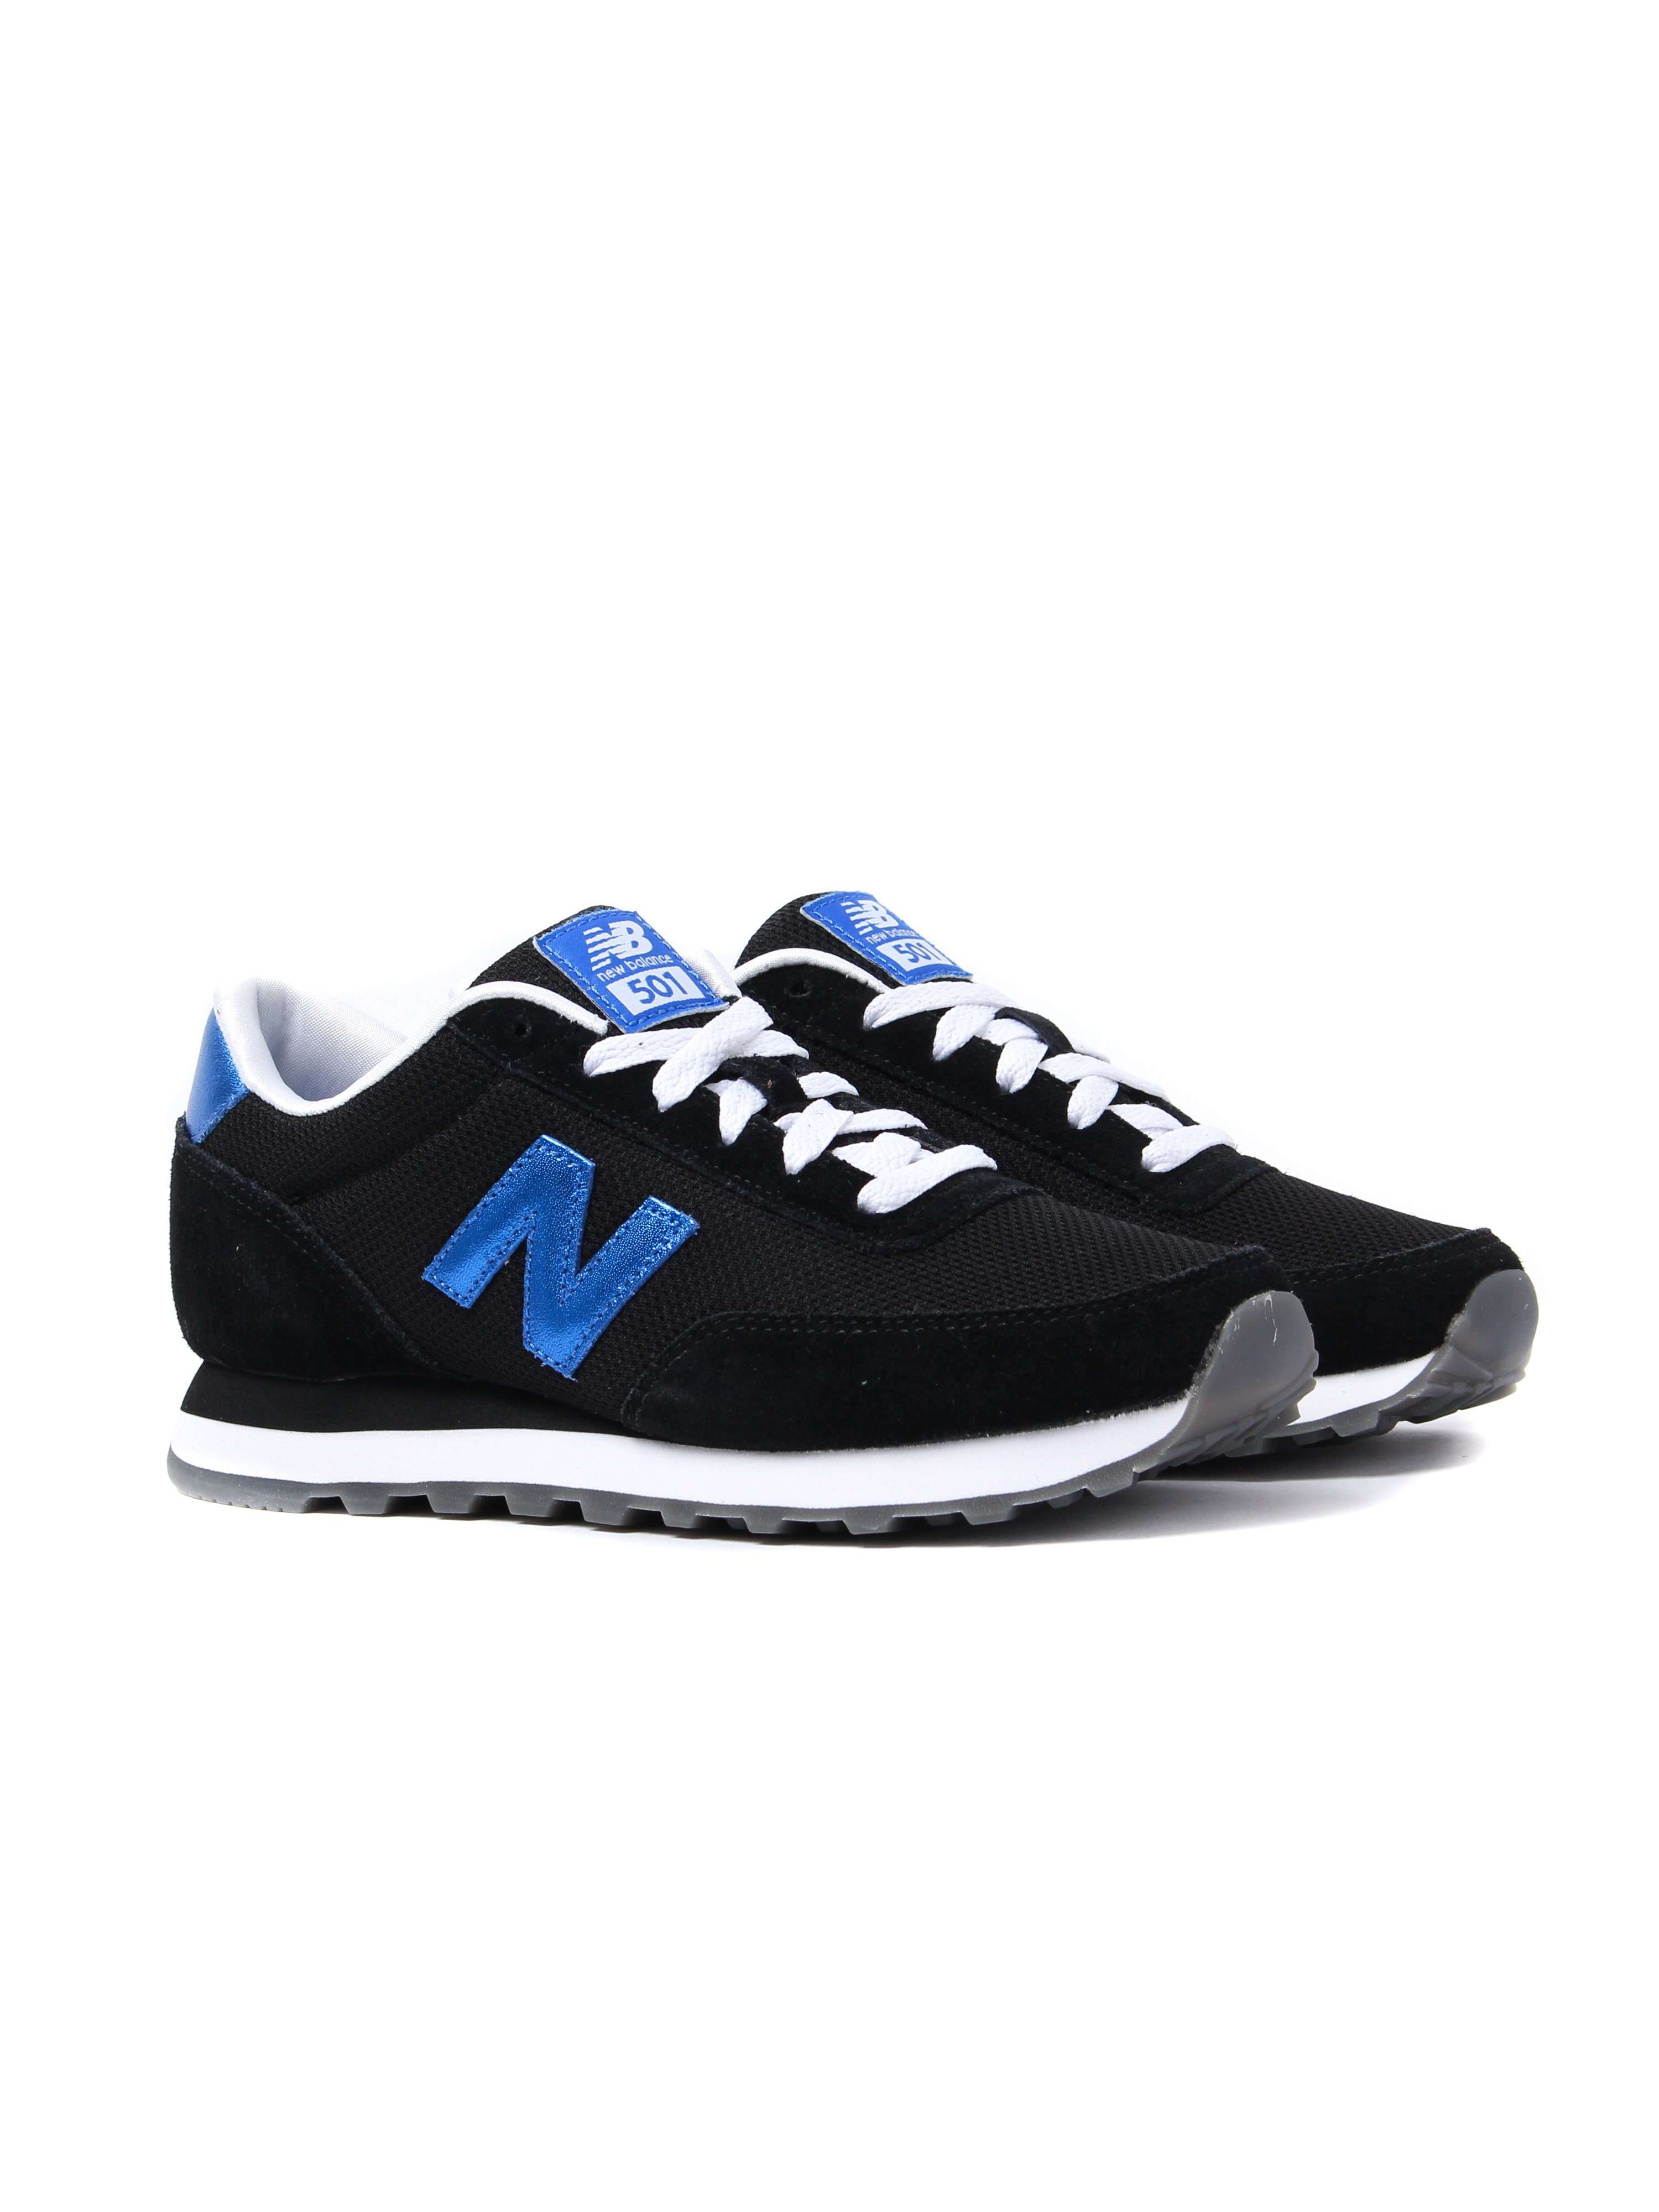 New Balance Women's 501 Trainers - Navy & Blue Suede